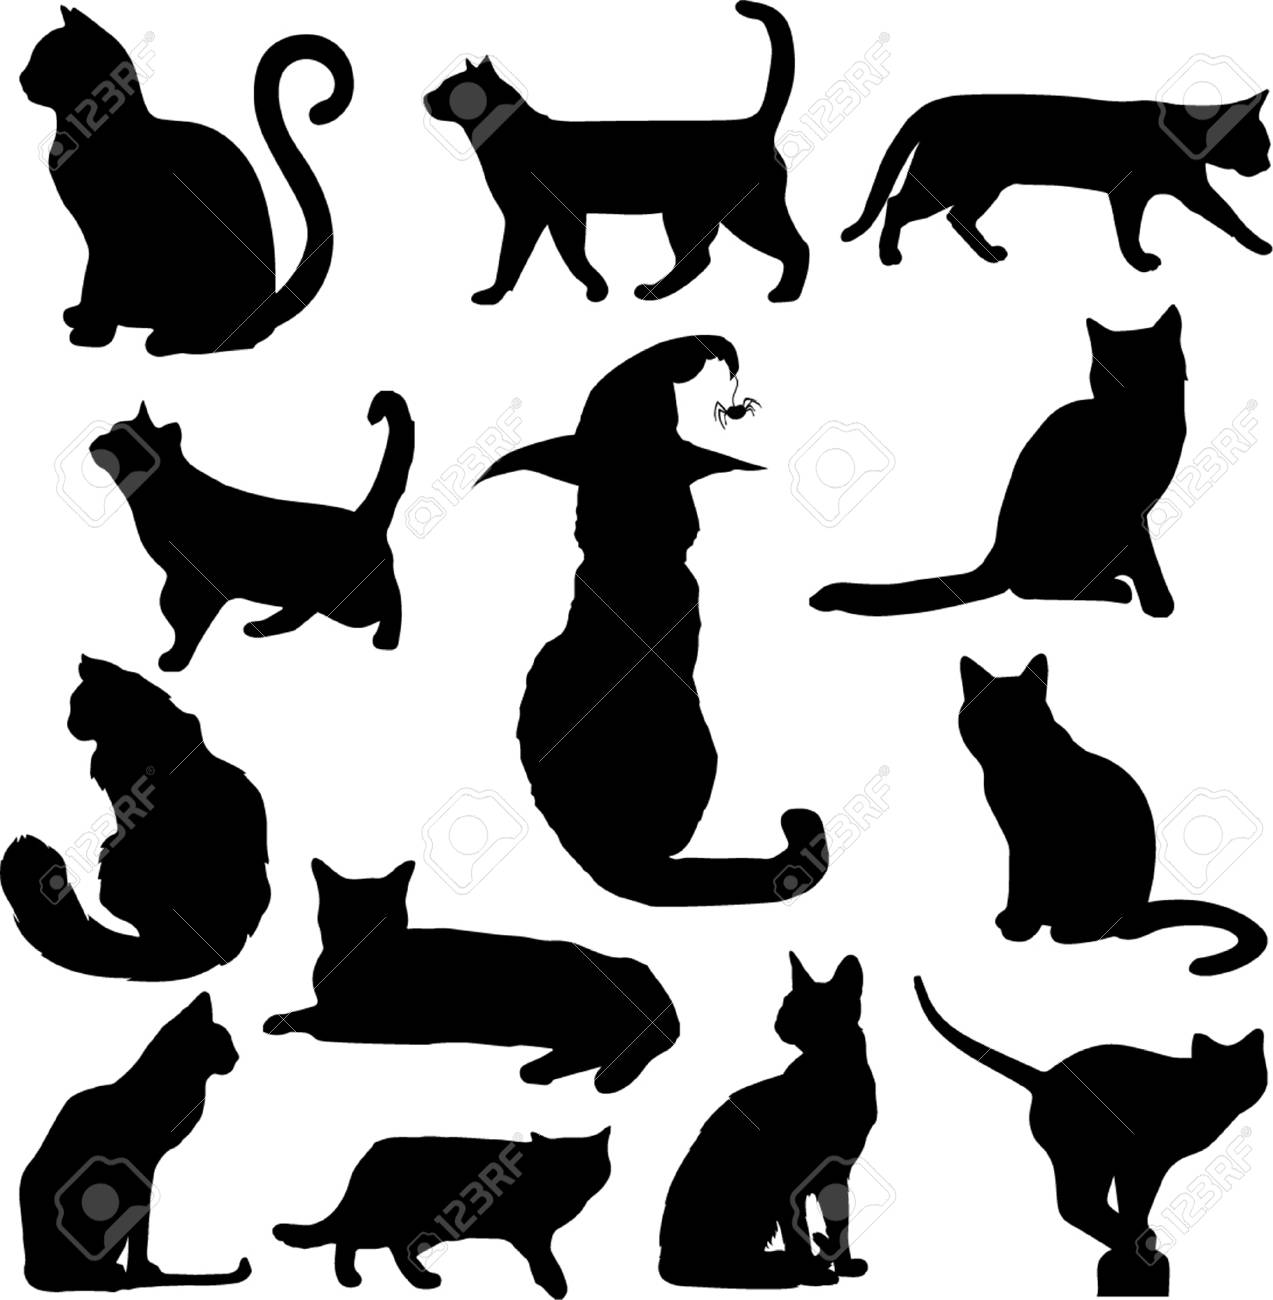 Set Of Black Cats Silhouettes Isolated On White Background Vector Royalty Free Cliparts Vectors And Stock Illustration Image 88362264